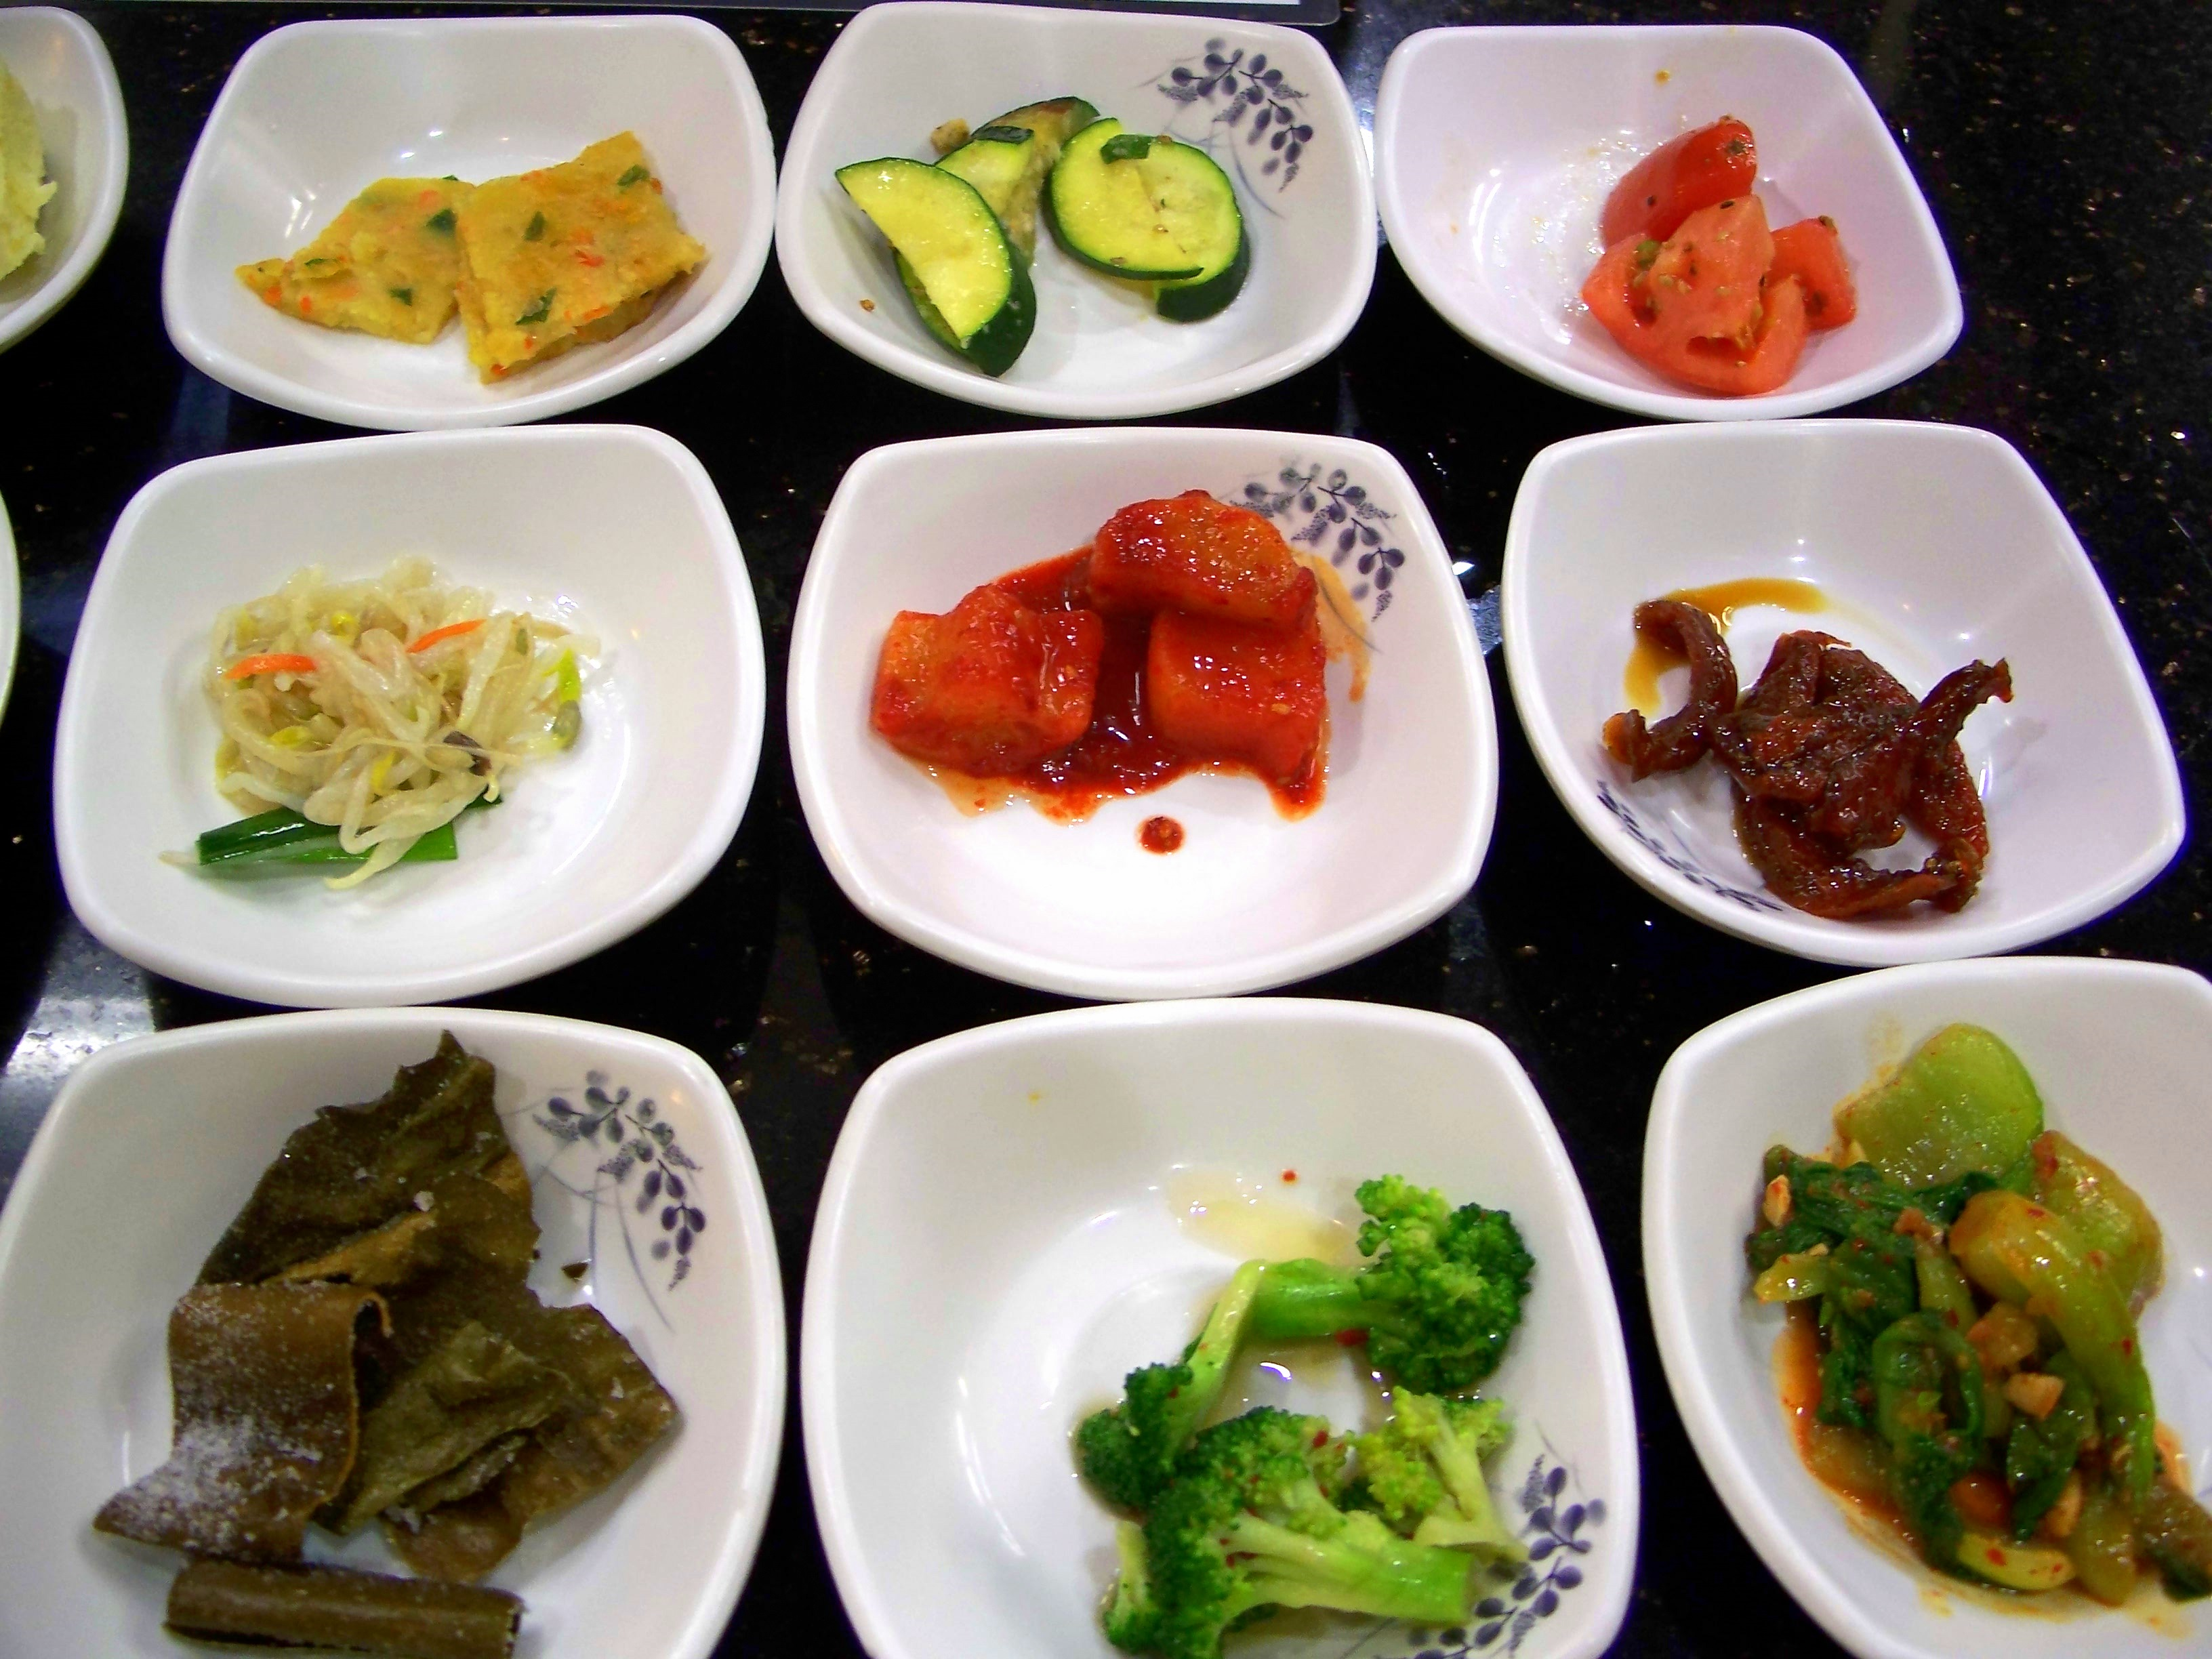 Sura in Oakland – A banchan chapter